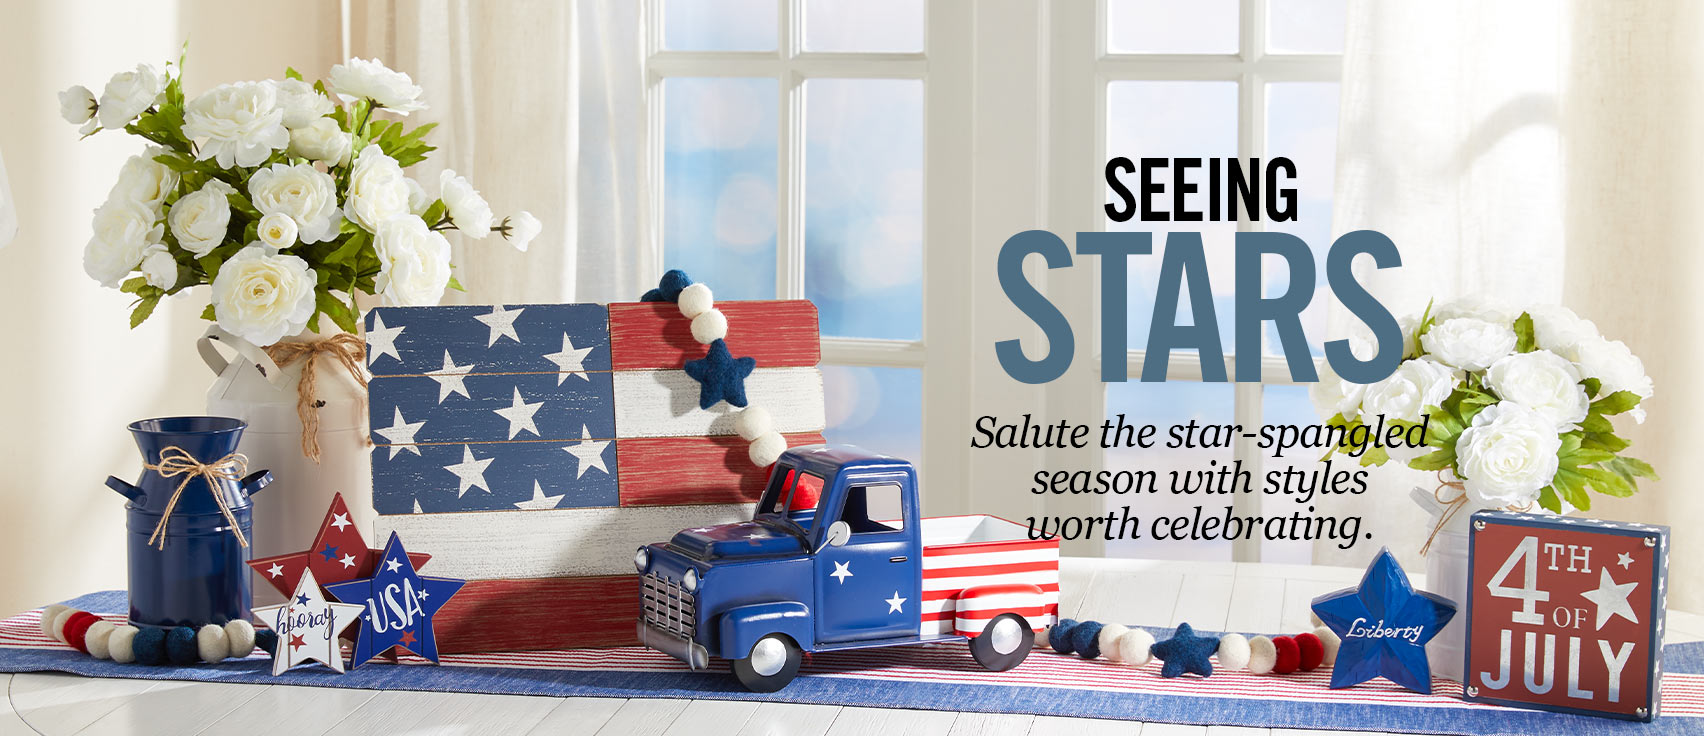 Seeing Stars - Salute the Star-Spangled Season with Styles Worth Celebrating